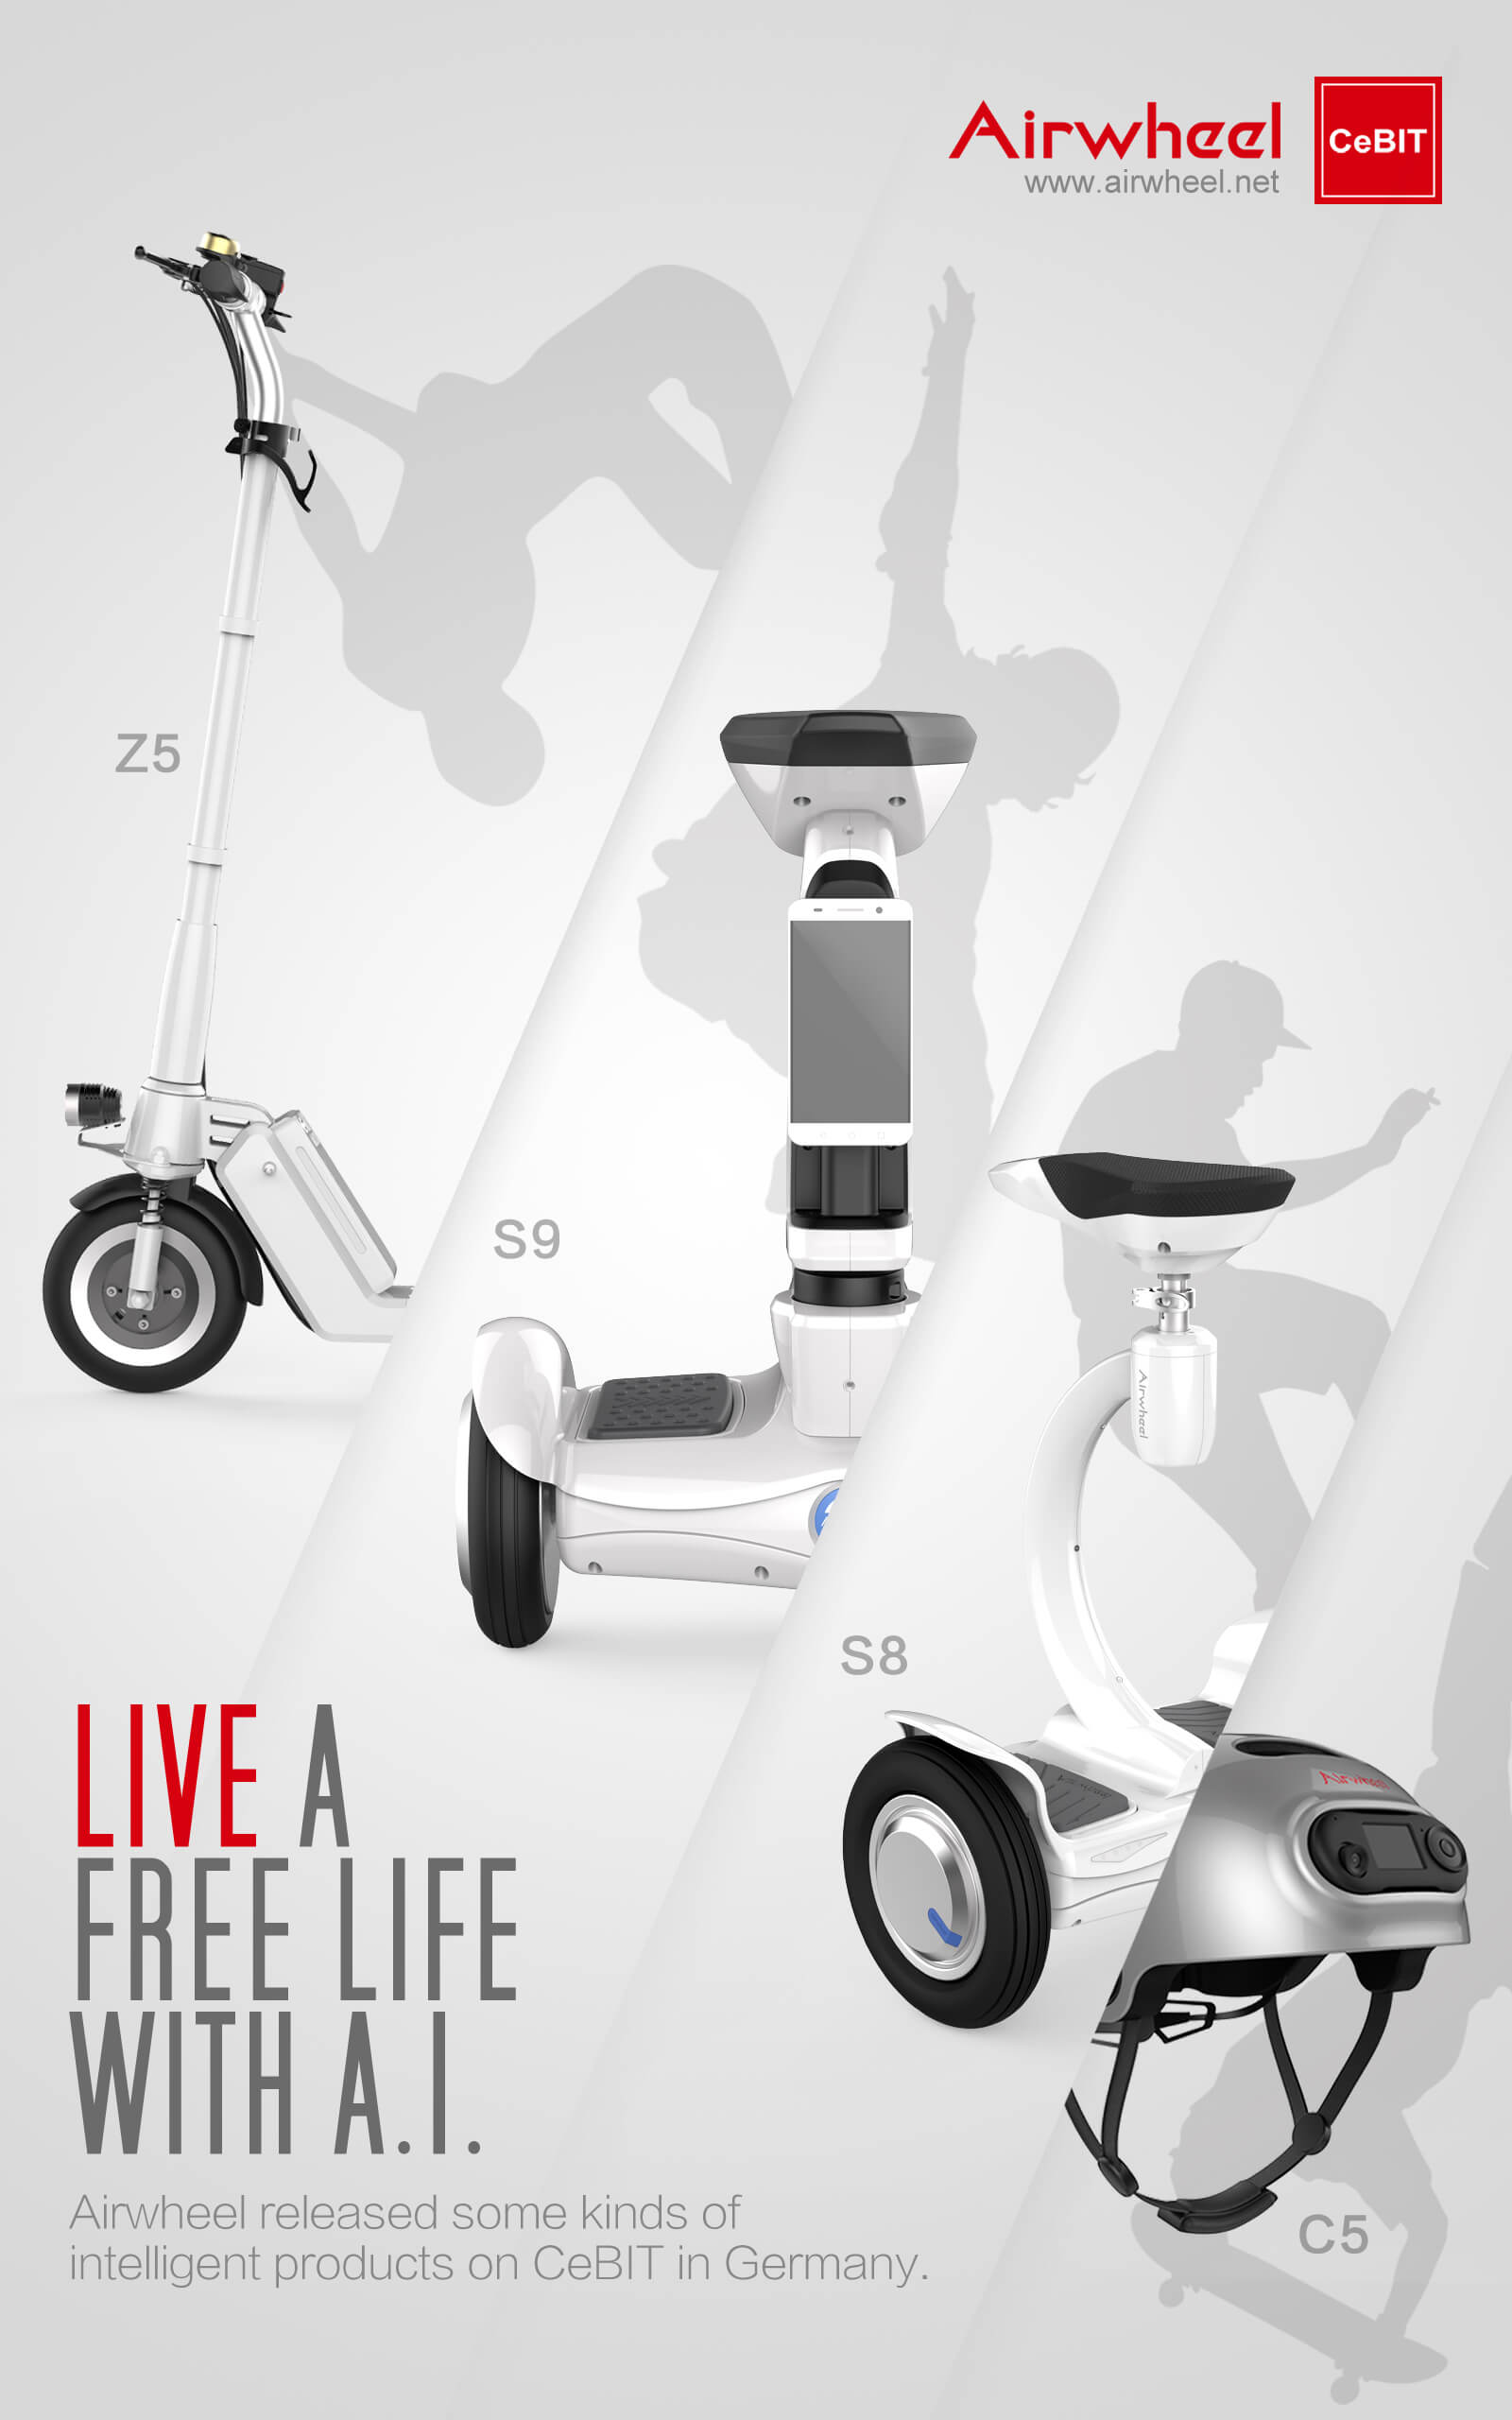 http://www.airwheel.net/scooters/cebit-airwheel-intelligence.jpg